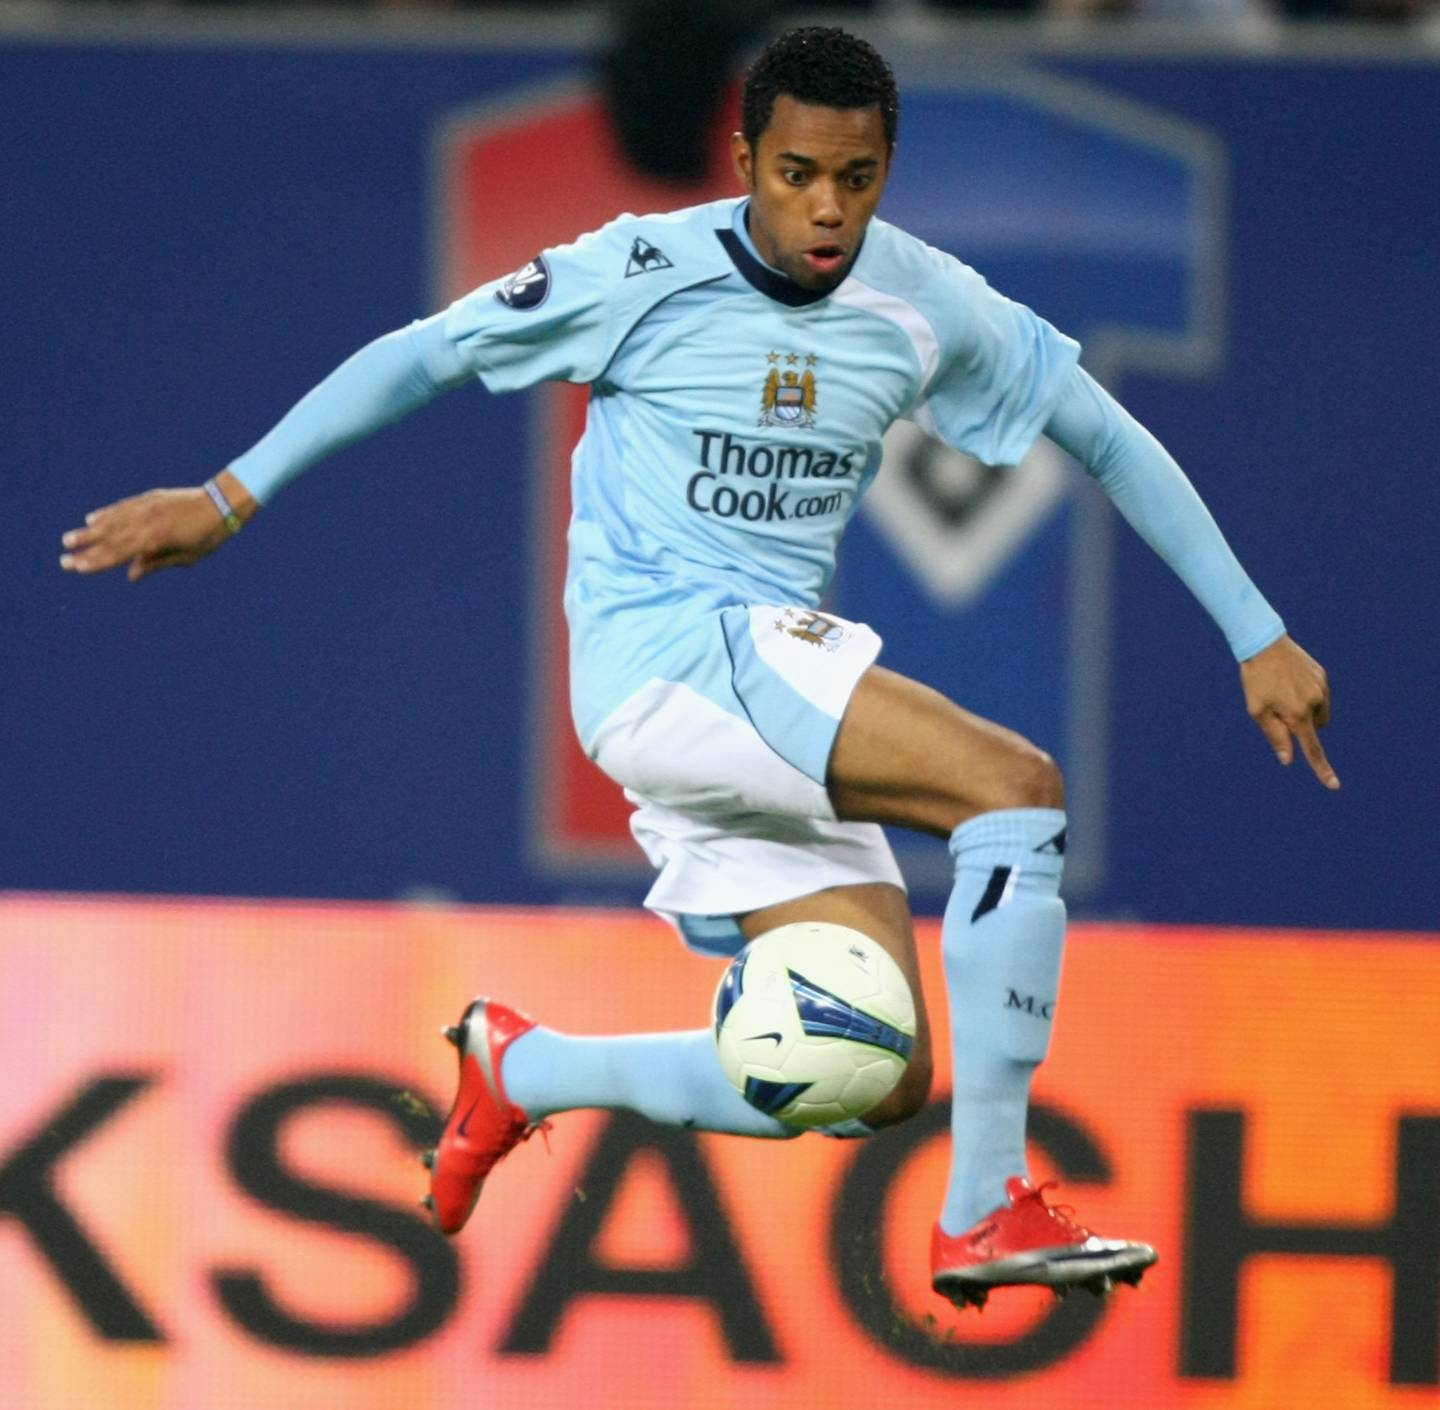 HAMBURG, GERMANY - APRIL 09:  Robinho of Manchester runs with the ball during the UEFA Cup quarter final first leg match between HSV Hamburg and Manchester City at the HSH Nordbank Arena on April 9, 2009 in Hamburg, Germany.  (Photo by Martin Rose/Bongarts/Getty Images)